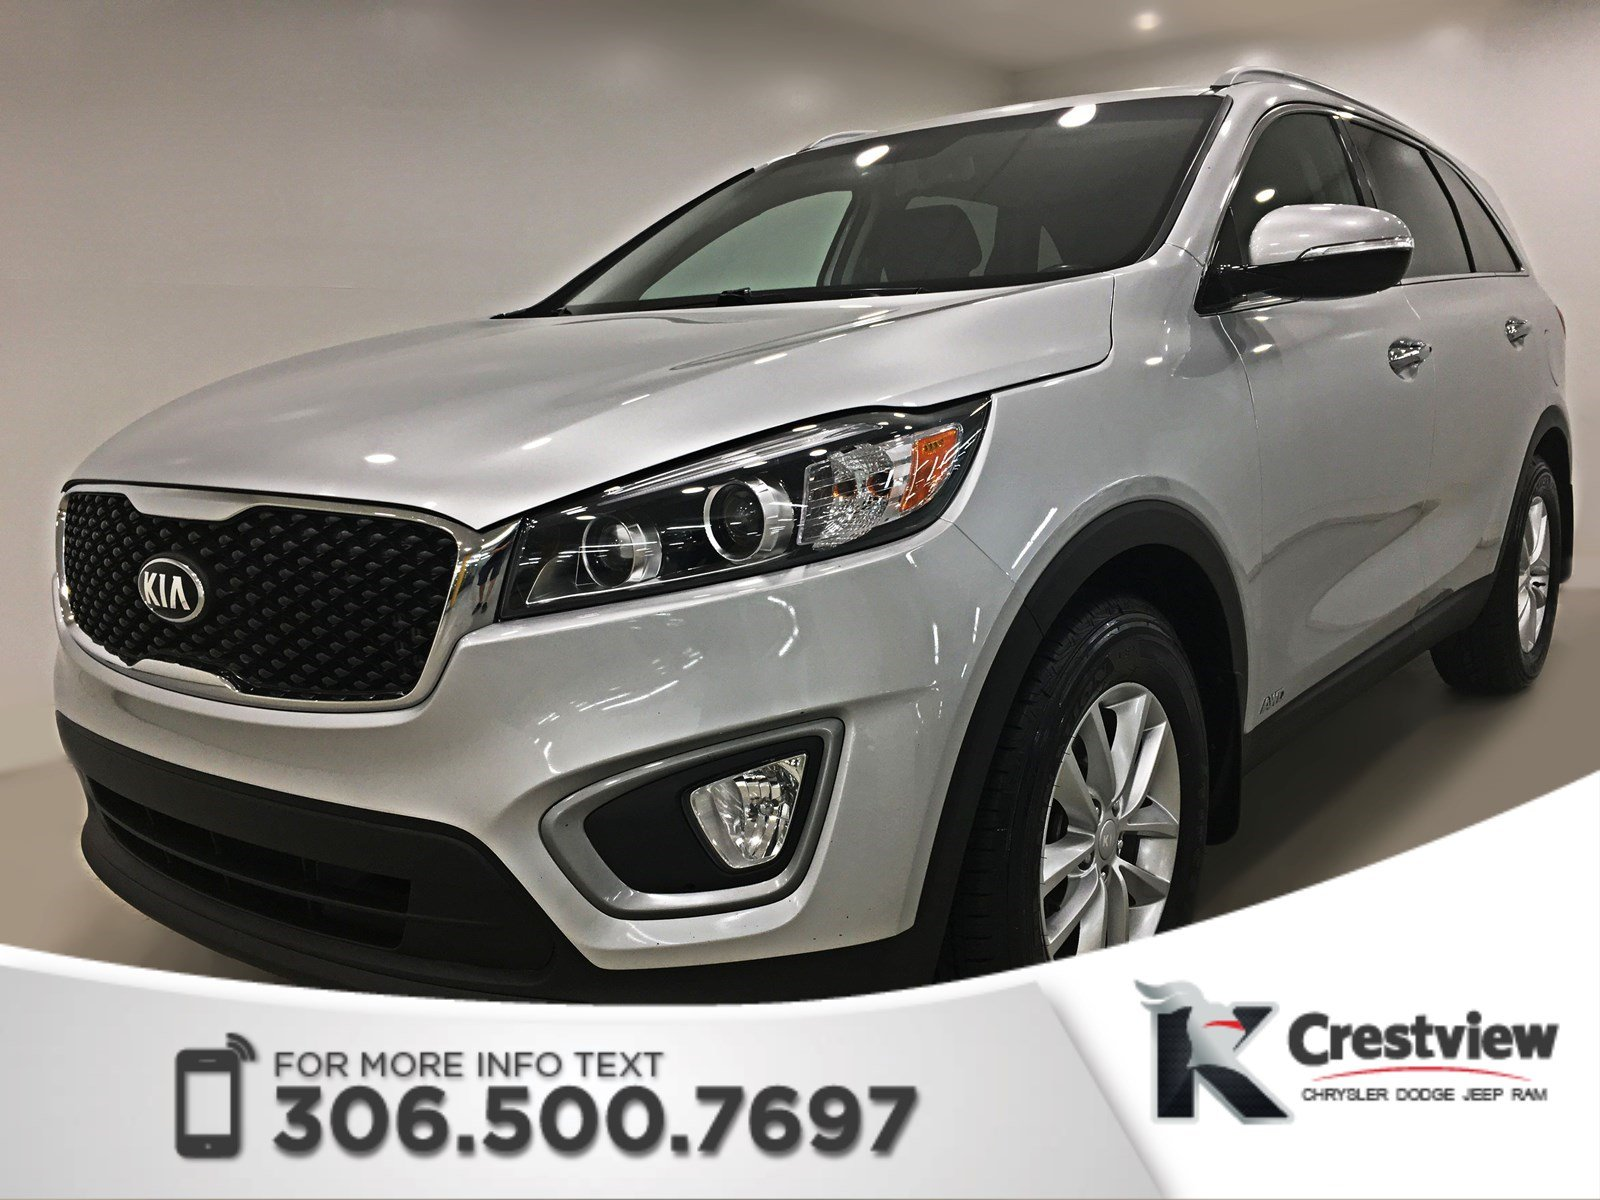 Certified used 2016 kia sorento 20l turbo lx heated seats back certified pre owned 2016 kia sorento 20l turbo lx heated seats back publicscrutiny Image collections